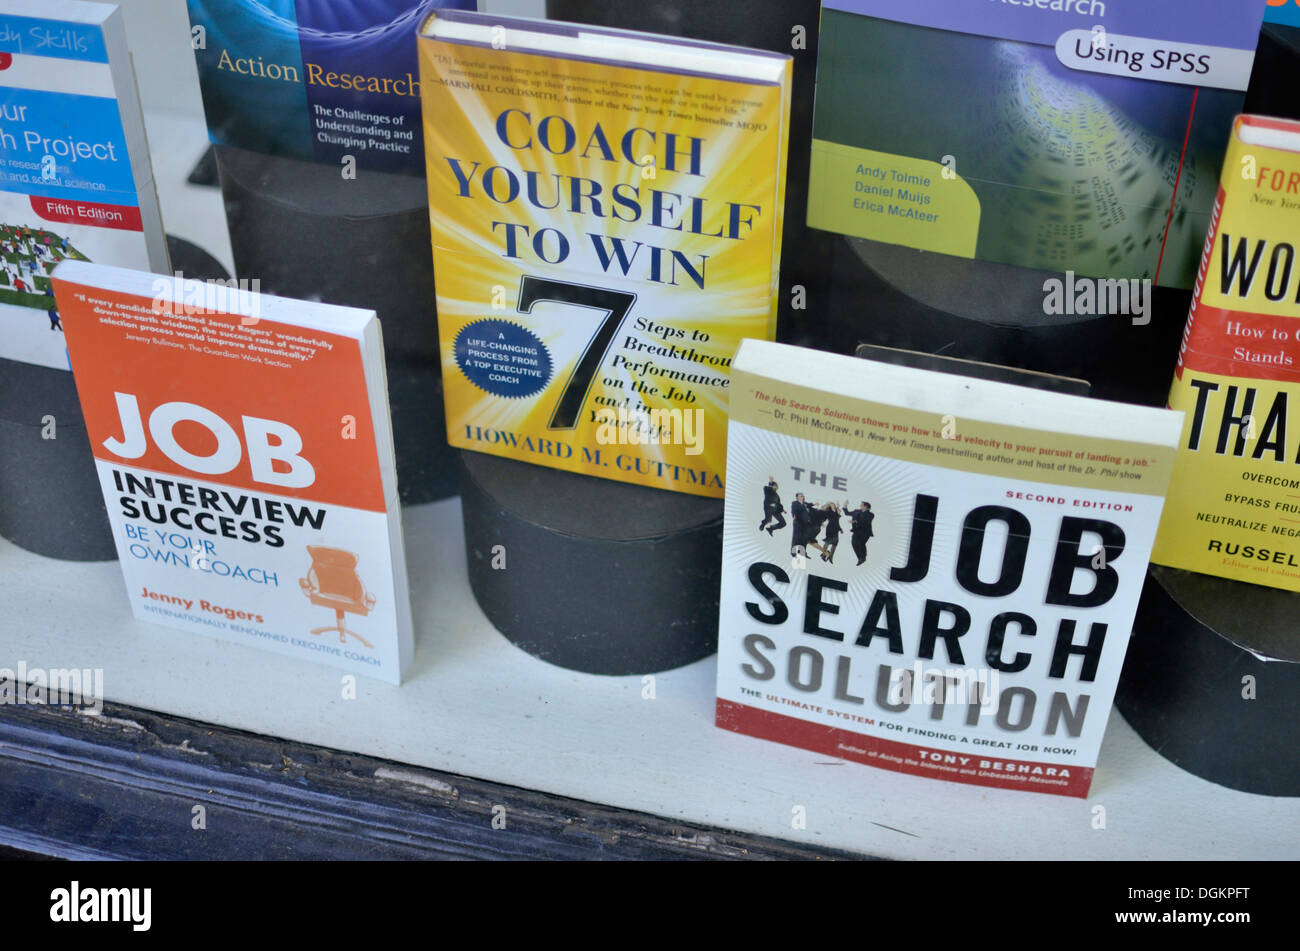 A shop window displaying motivational books aimed at helping to find a job. - Stock Image